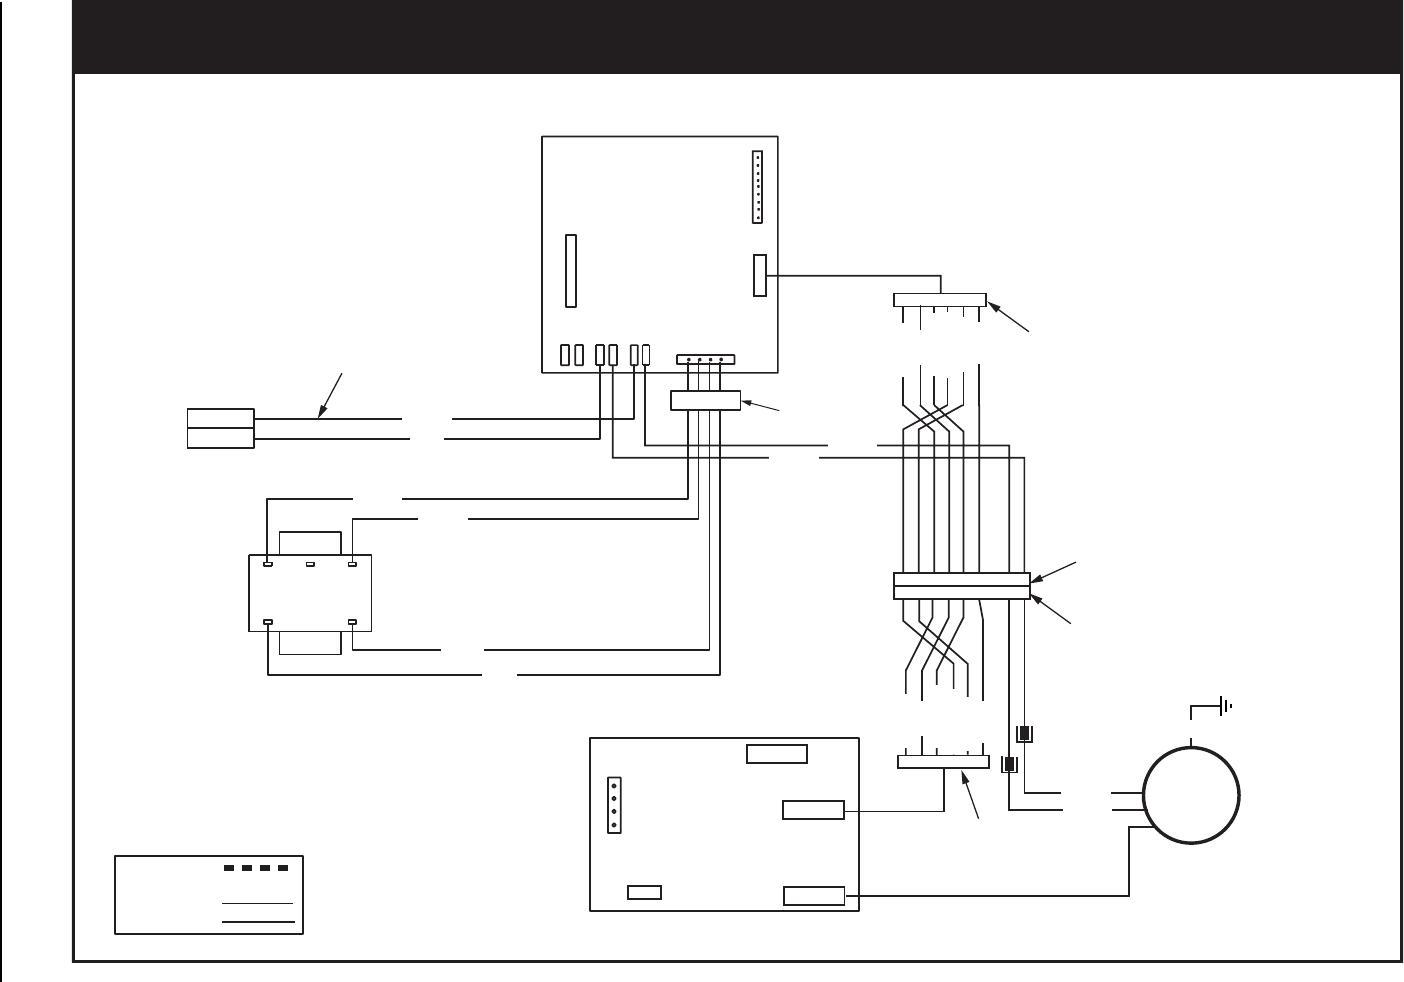 hight resolution of tappan air conditioner wiring diagram expert wiring diagrams air conditioning schematic diagram tappan air conditioner wiring diagram